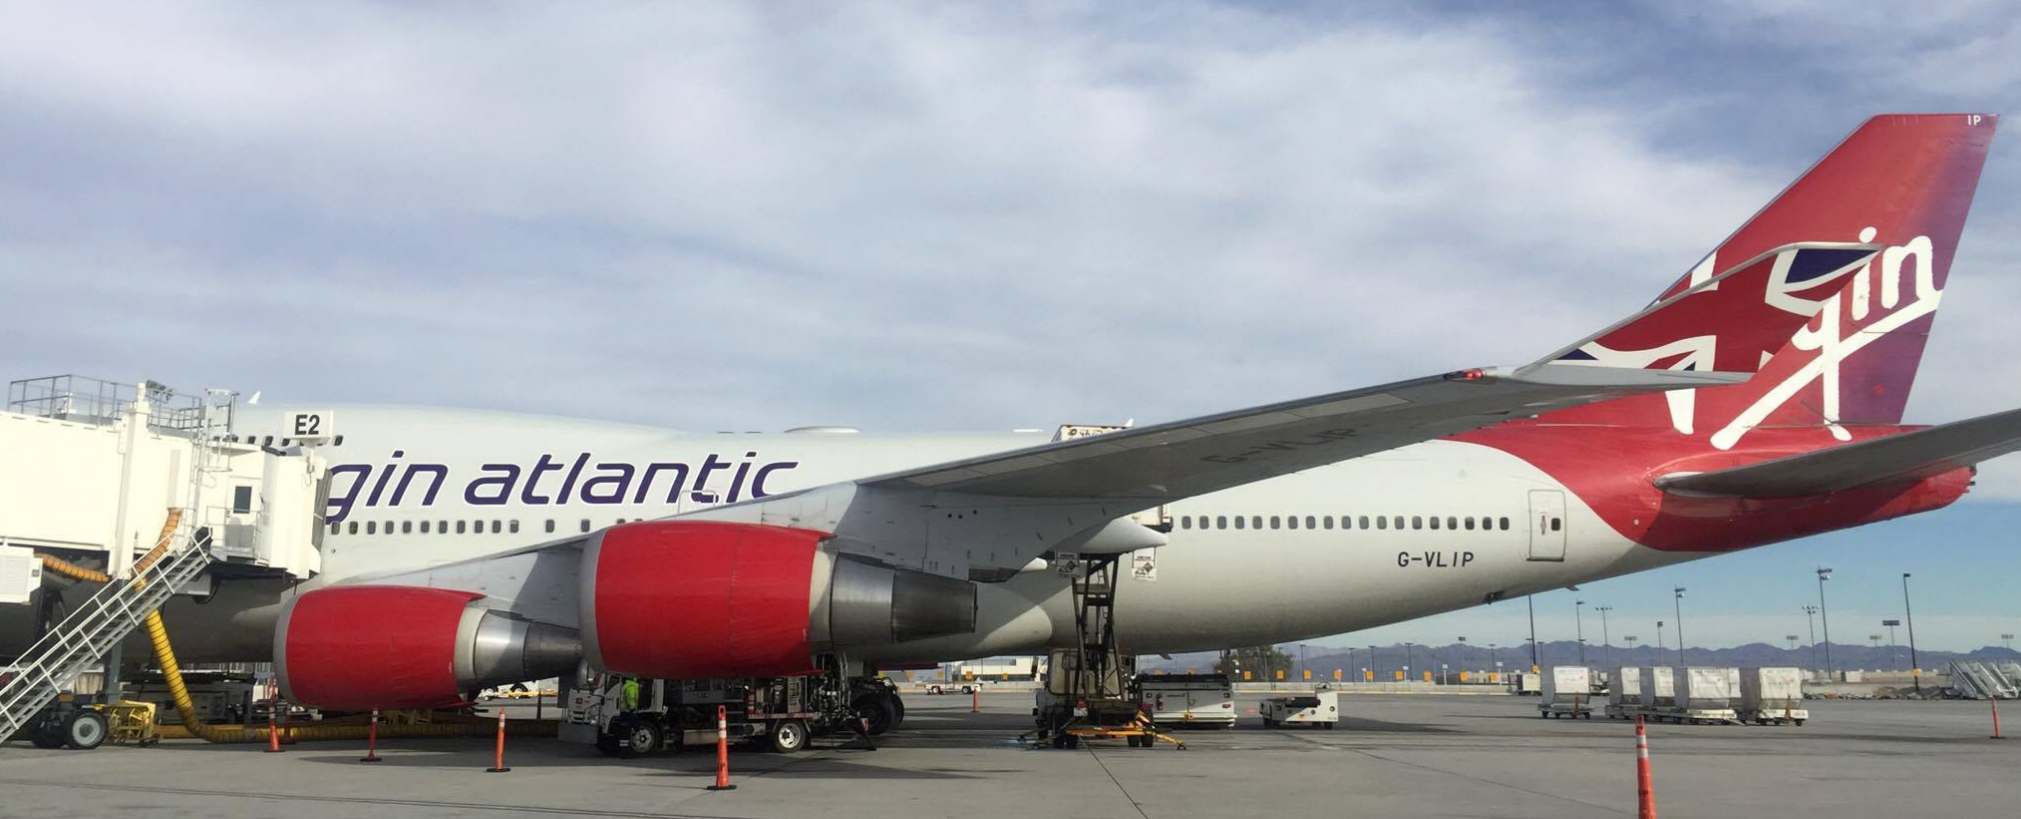 Wifi is now available on every Virgin Atlantic plane to